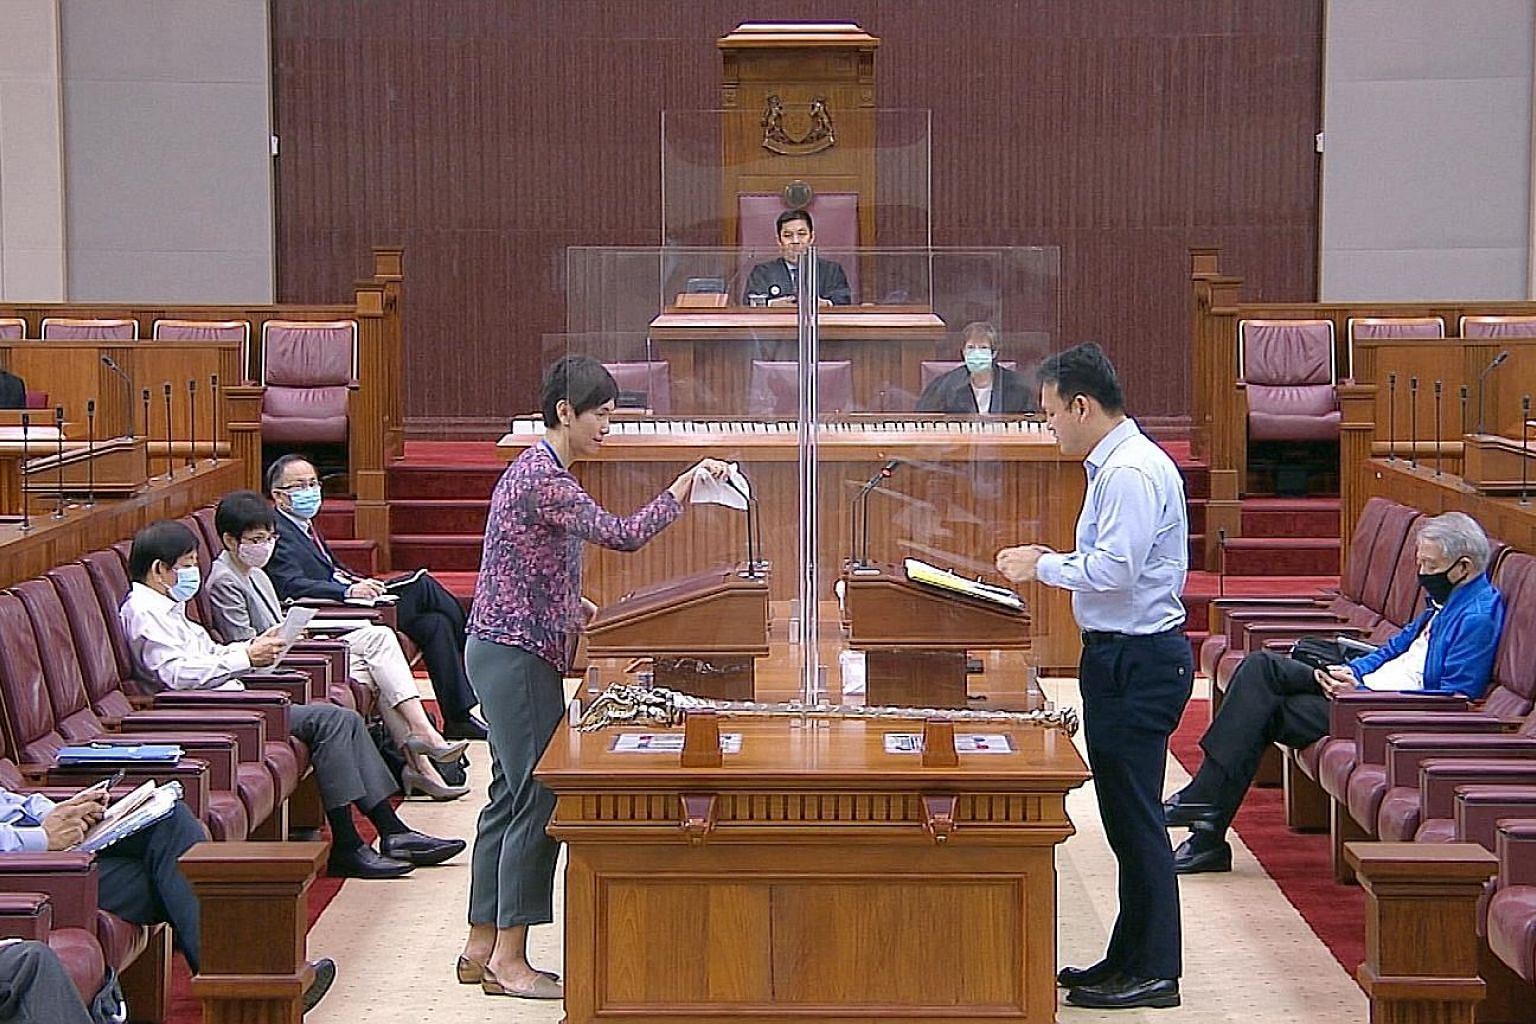 Manpower Minister Josephine Teo wiping down the microphone and podium after answering questions in Parliament yesterday as Minister of State for Manpower Zaqy Mohamad stepped up to speak. Perspex screens were set up in the House as part of safe dista